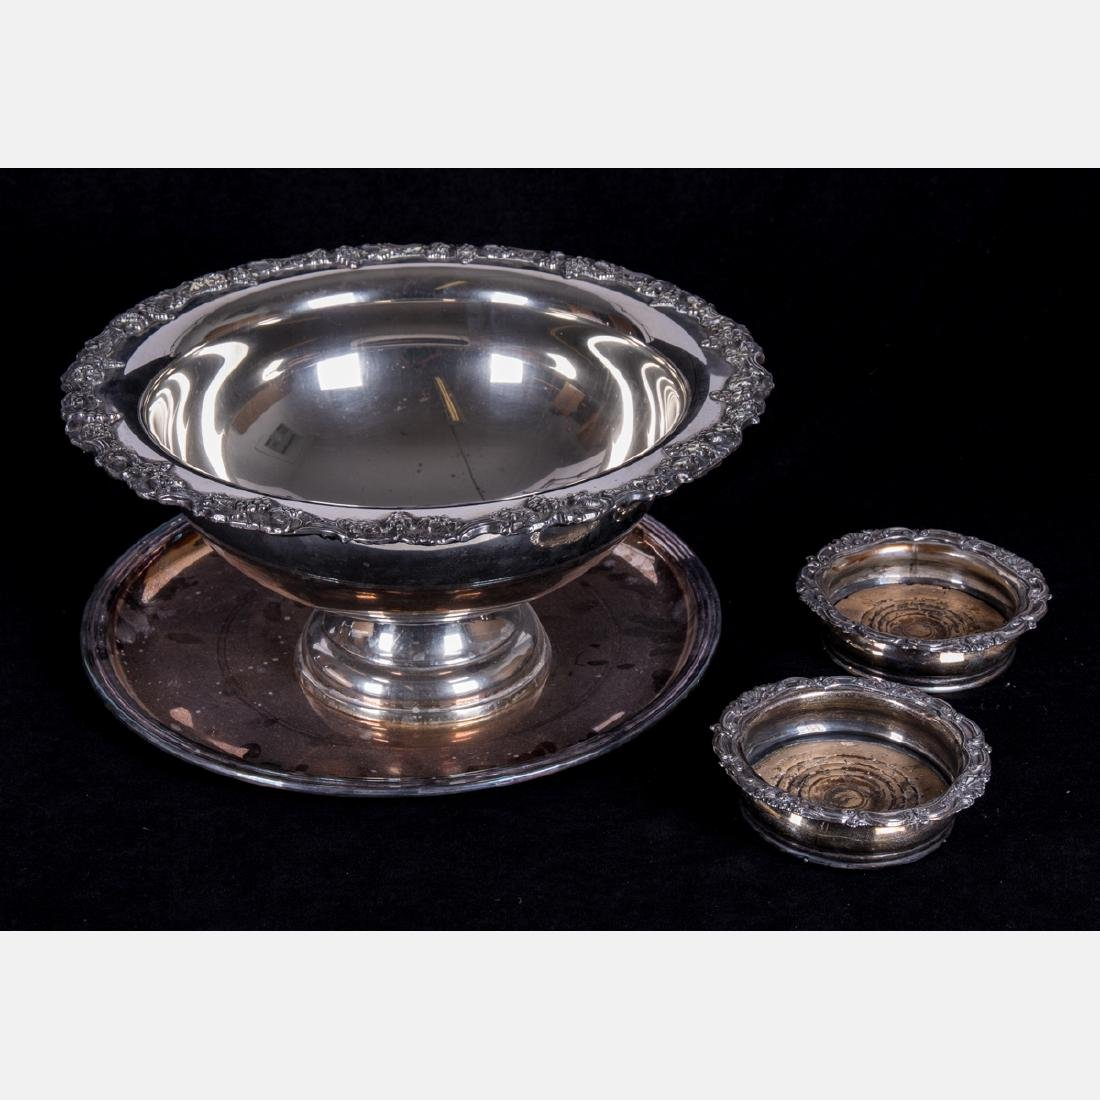 A Group of Four Silverplated Serving Items, 20th